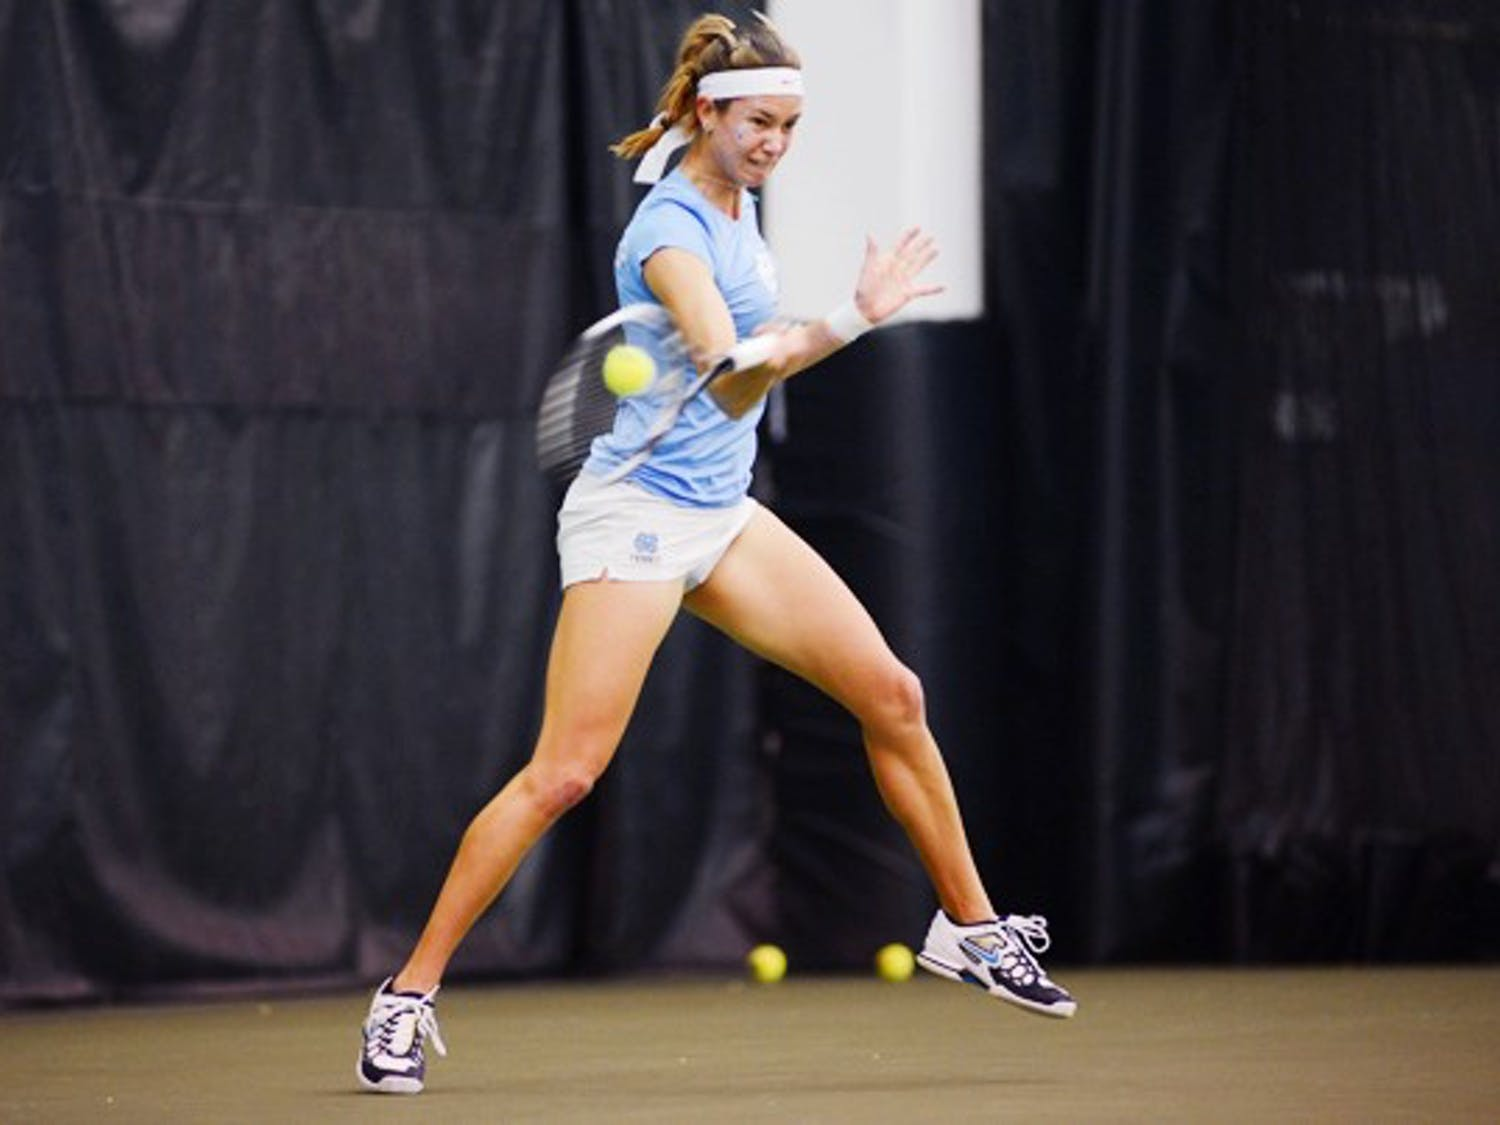 UNC Senior Zoe De Bruycker returns the ball in her doubles match against Collins/Janowicz.